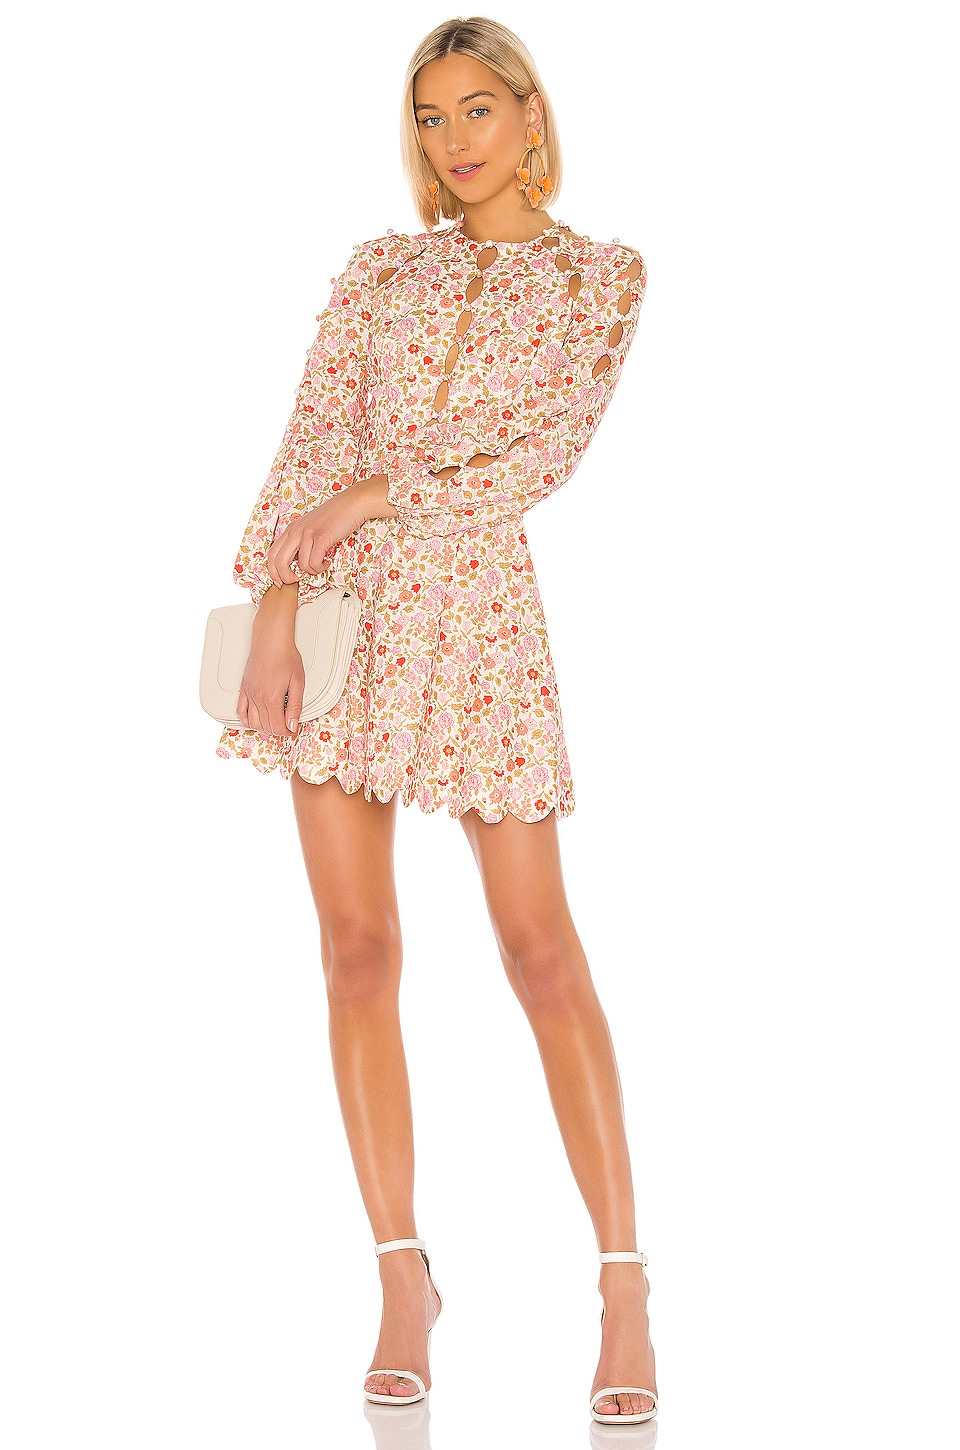 Zimmermann Goldie Scallop Dress in Coral Blossom